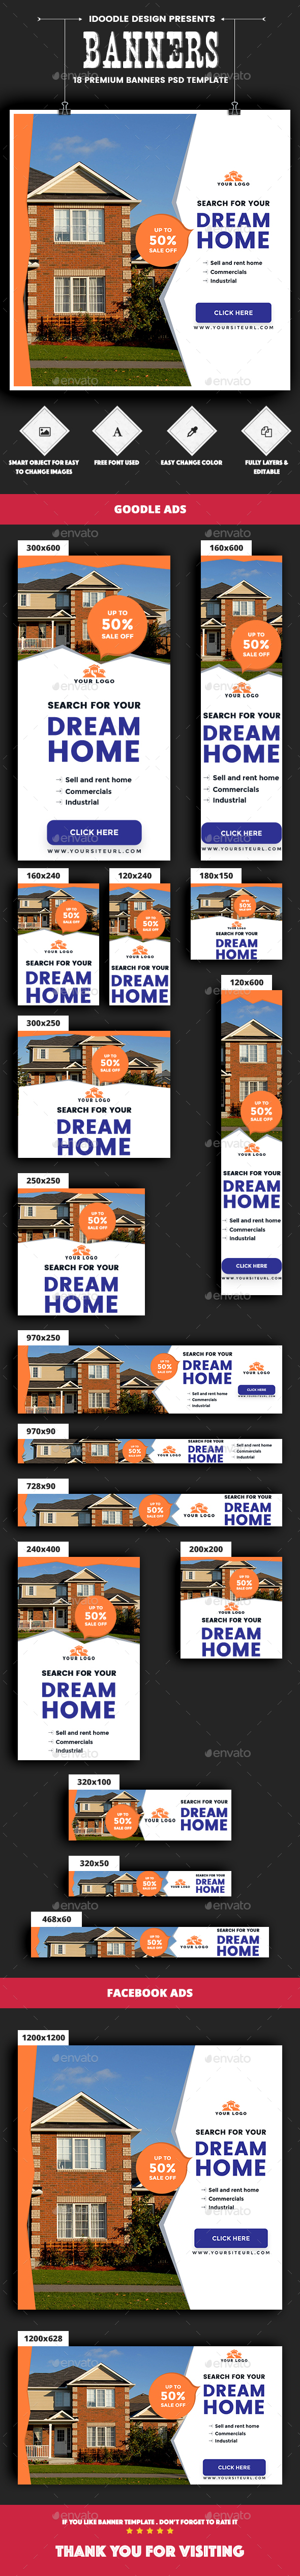 Real Estate Banners Ads - Banners & Ads Web Elements